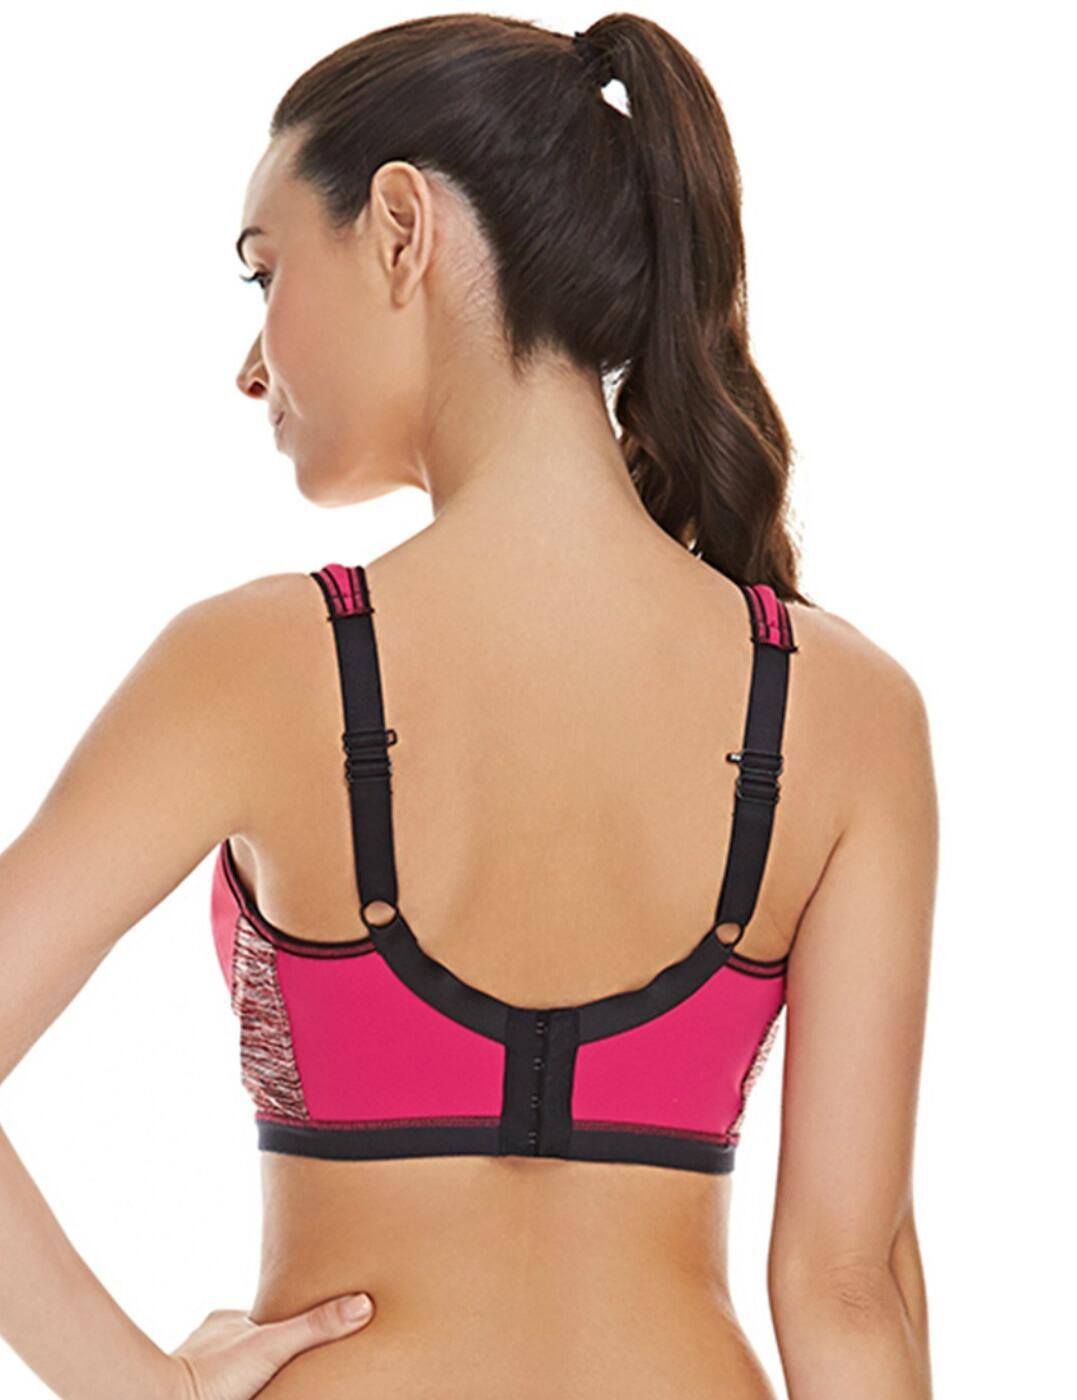 Freya Active Epic Sports Bra 4004 Underwired Padded Moulded High Impact Gym Bra